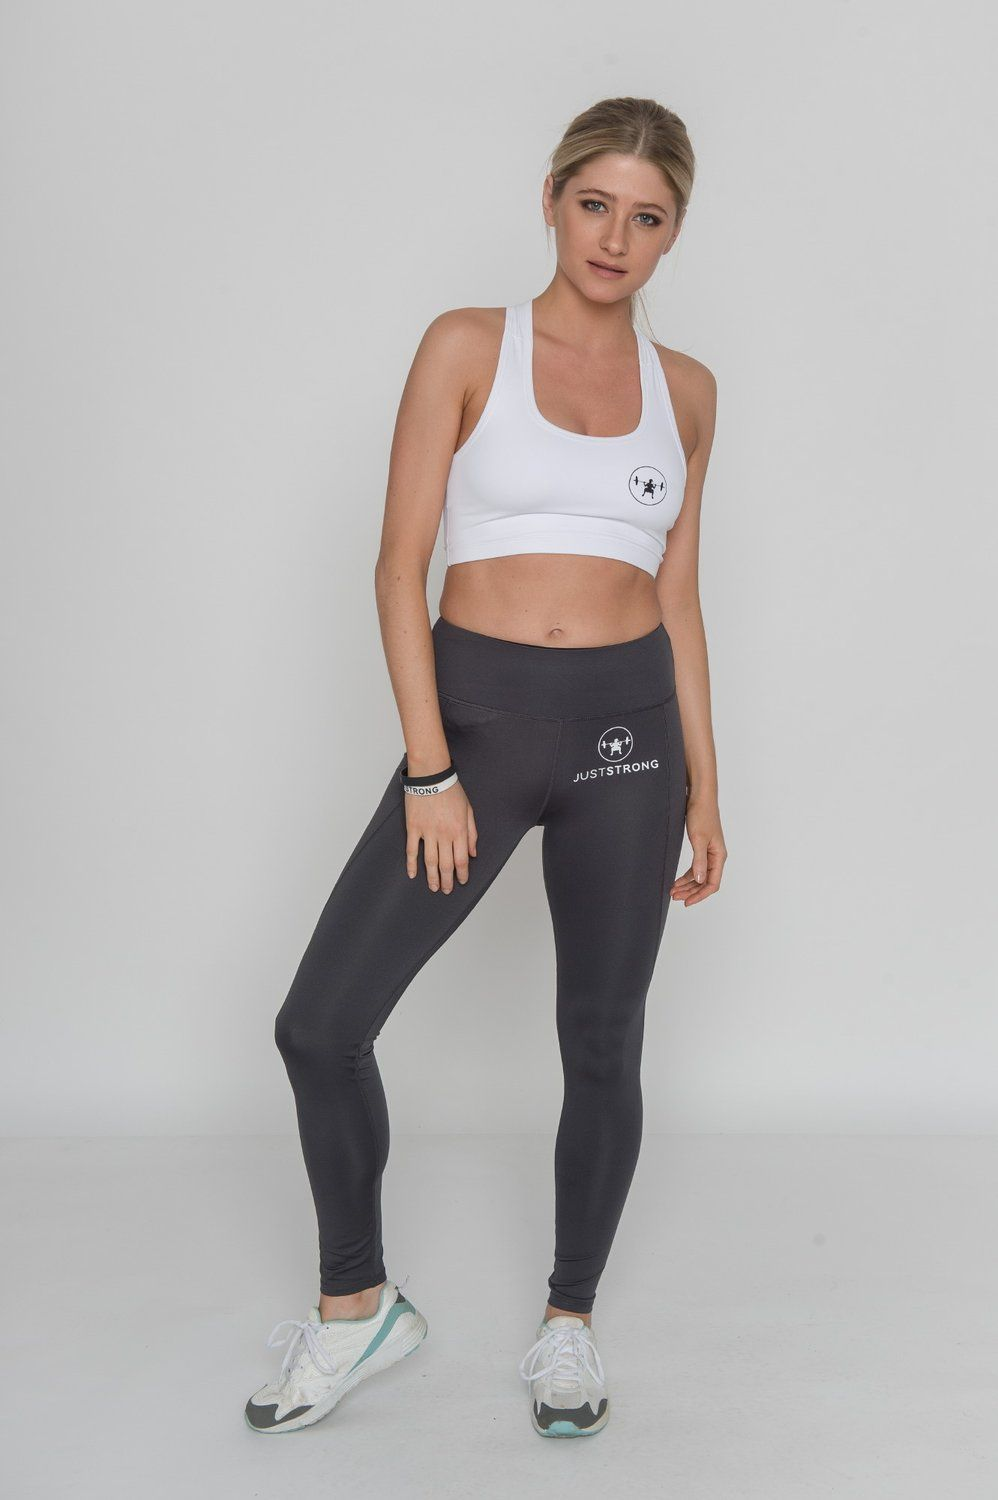 6a0c88b9233 Sport Wear · CHARCOAL JUST STRONG LEGGINGS   41.44 - Visit Just Strong for  Available Sizes. High waisted